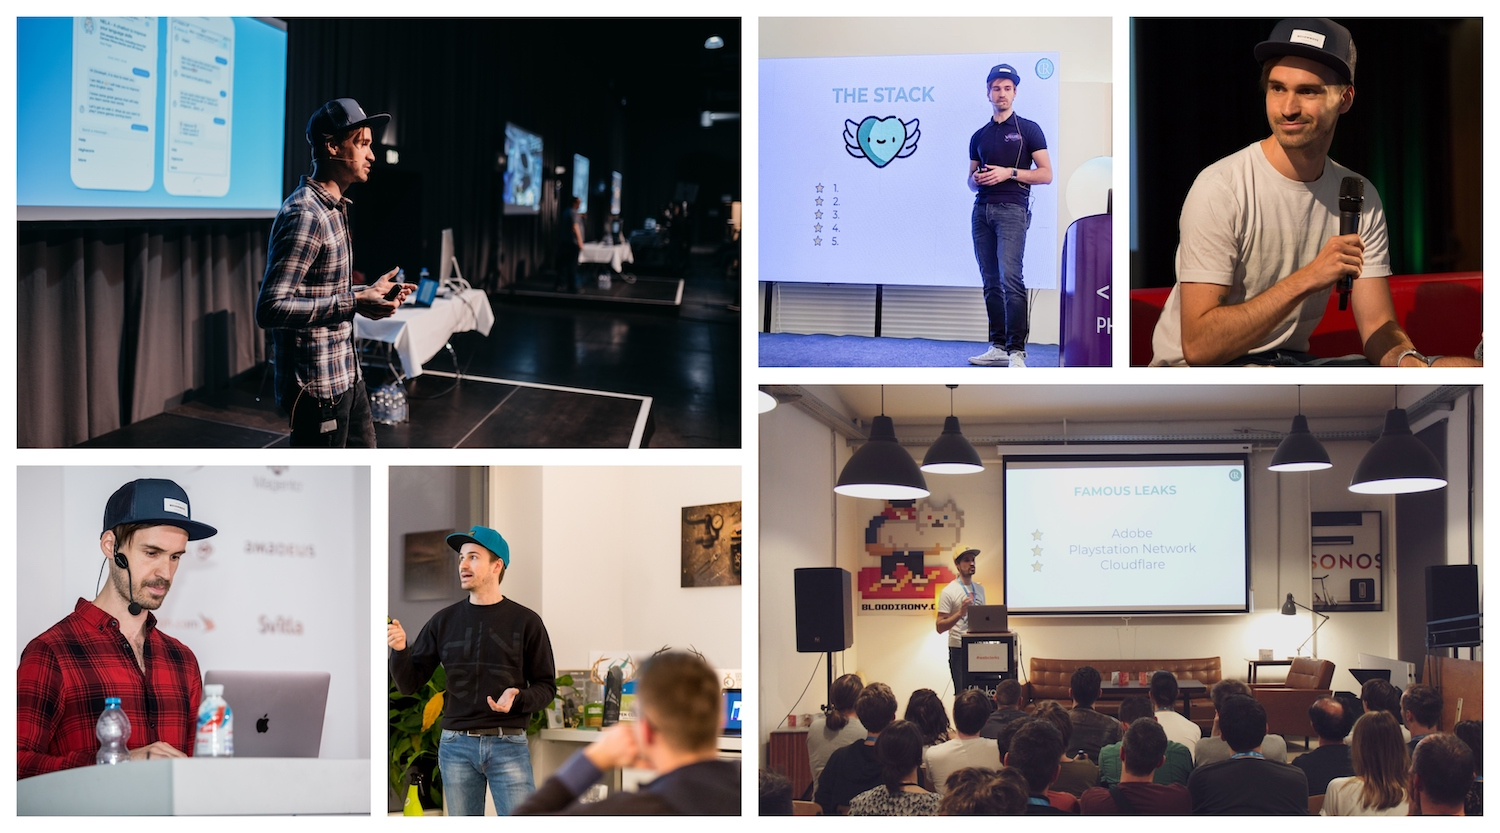 Collage of photos with Christoph as a speaker